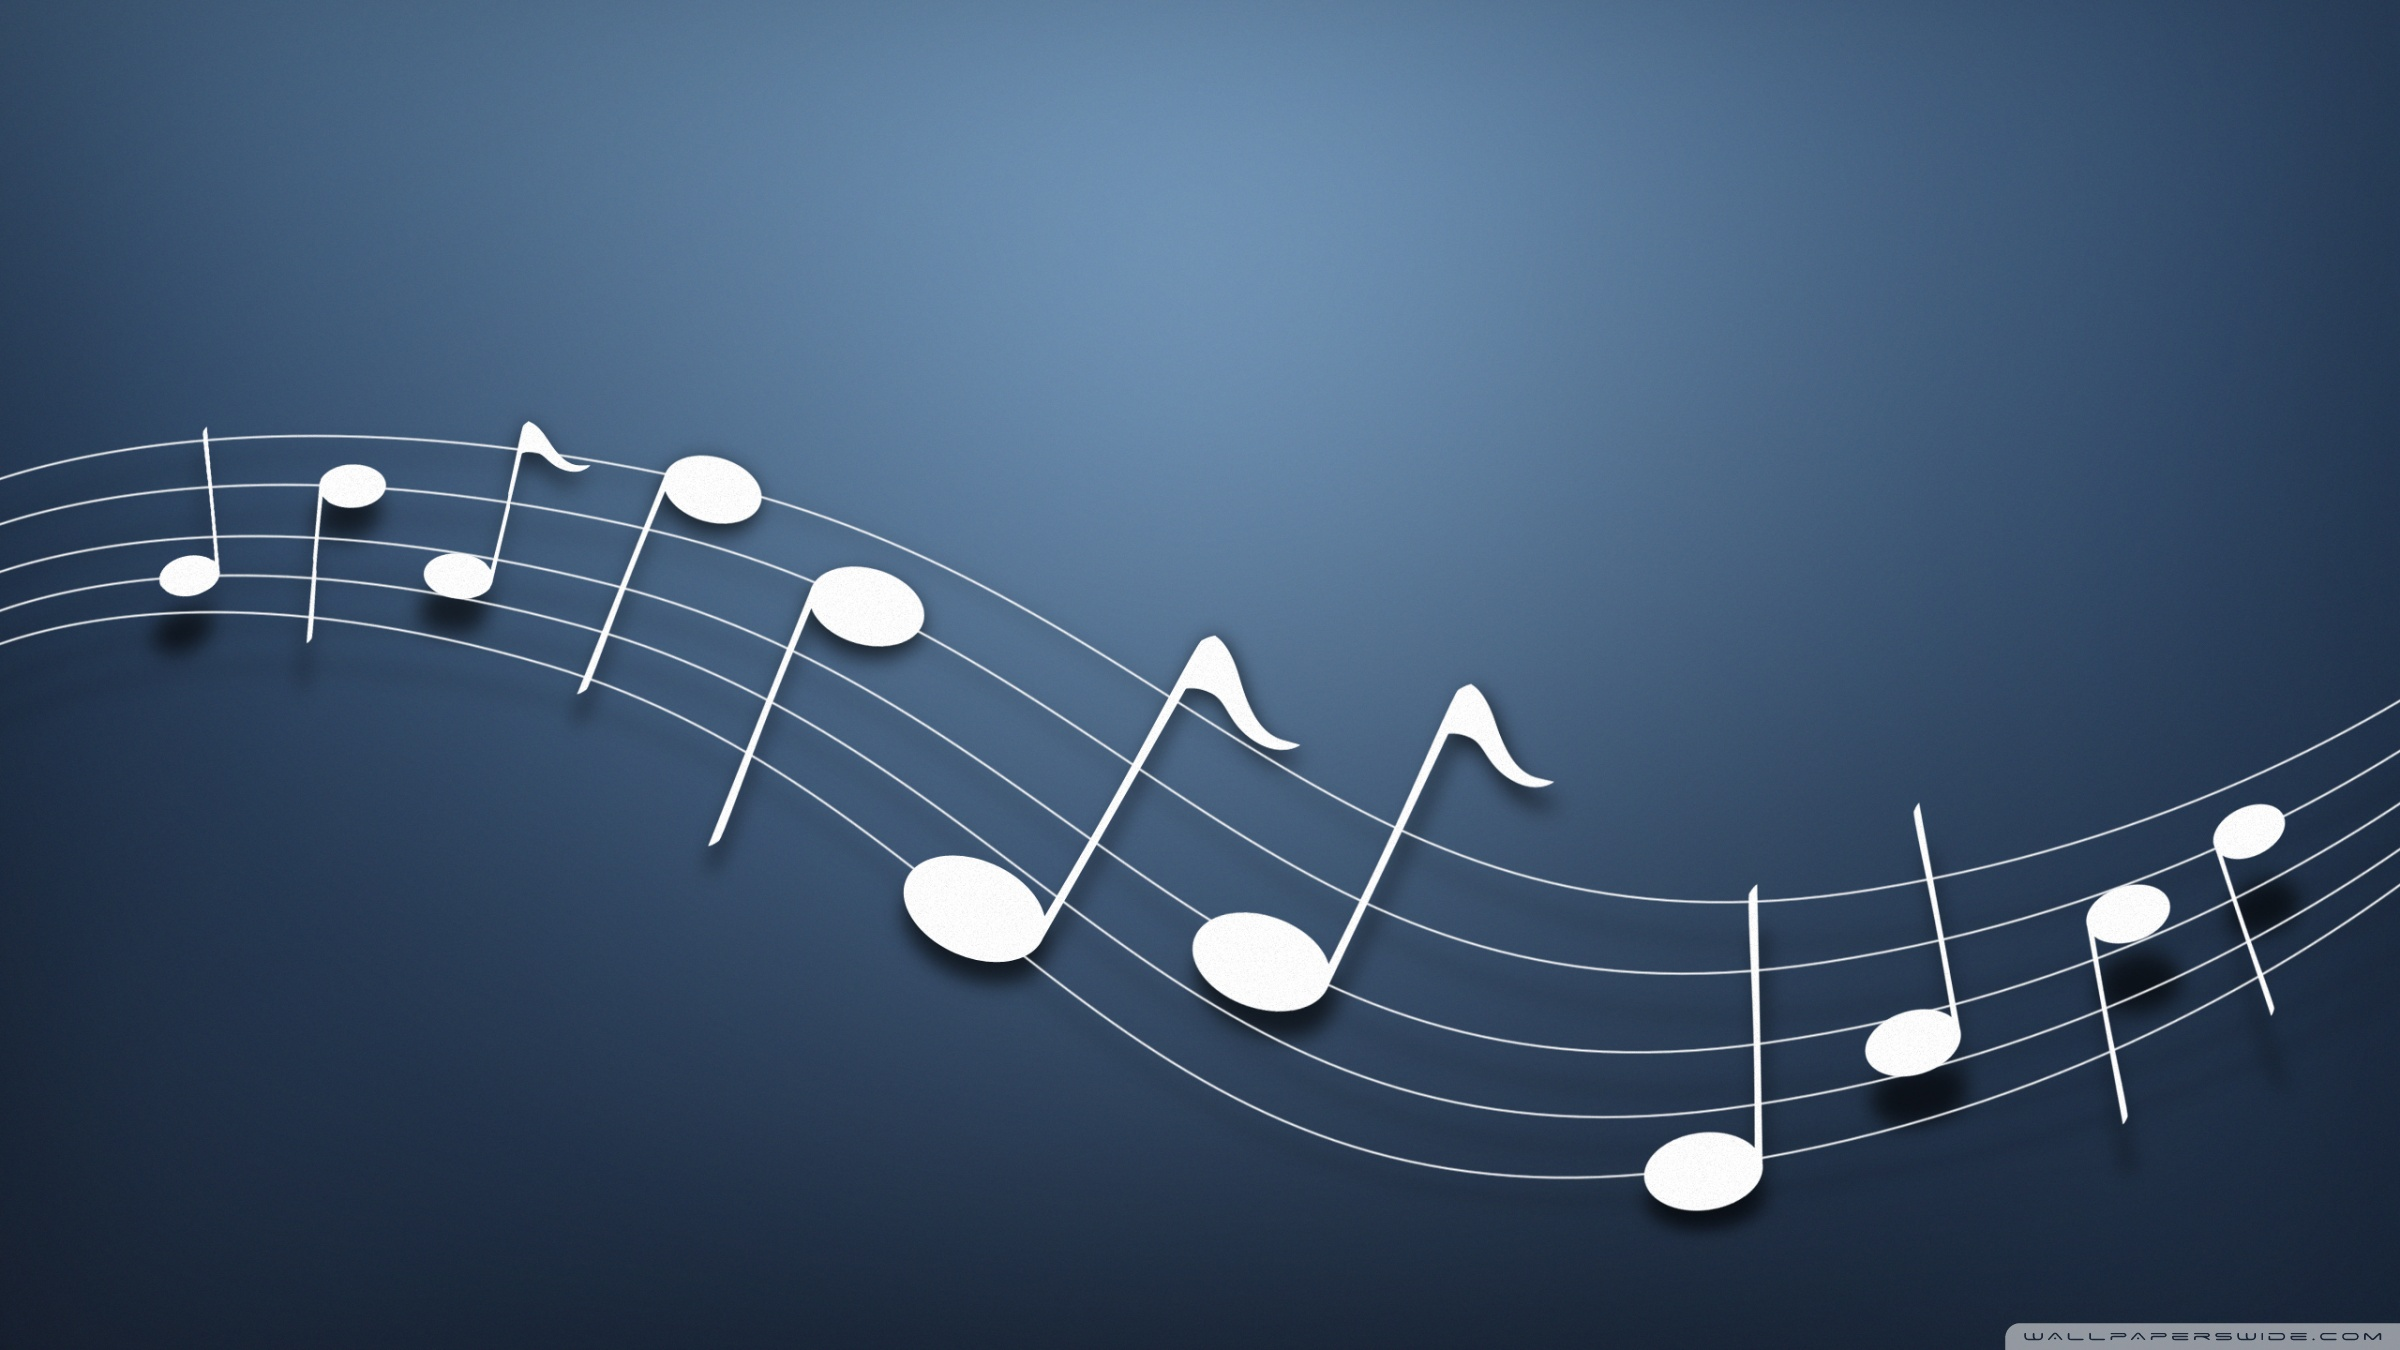 music-notes-wallpaper-6.jpg